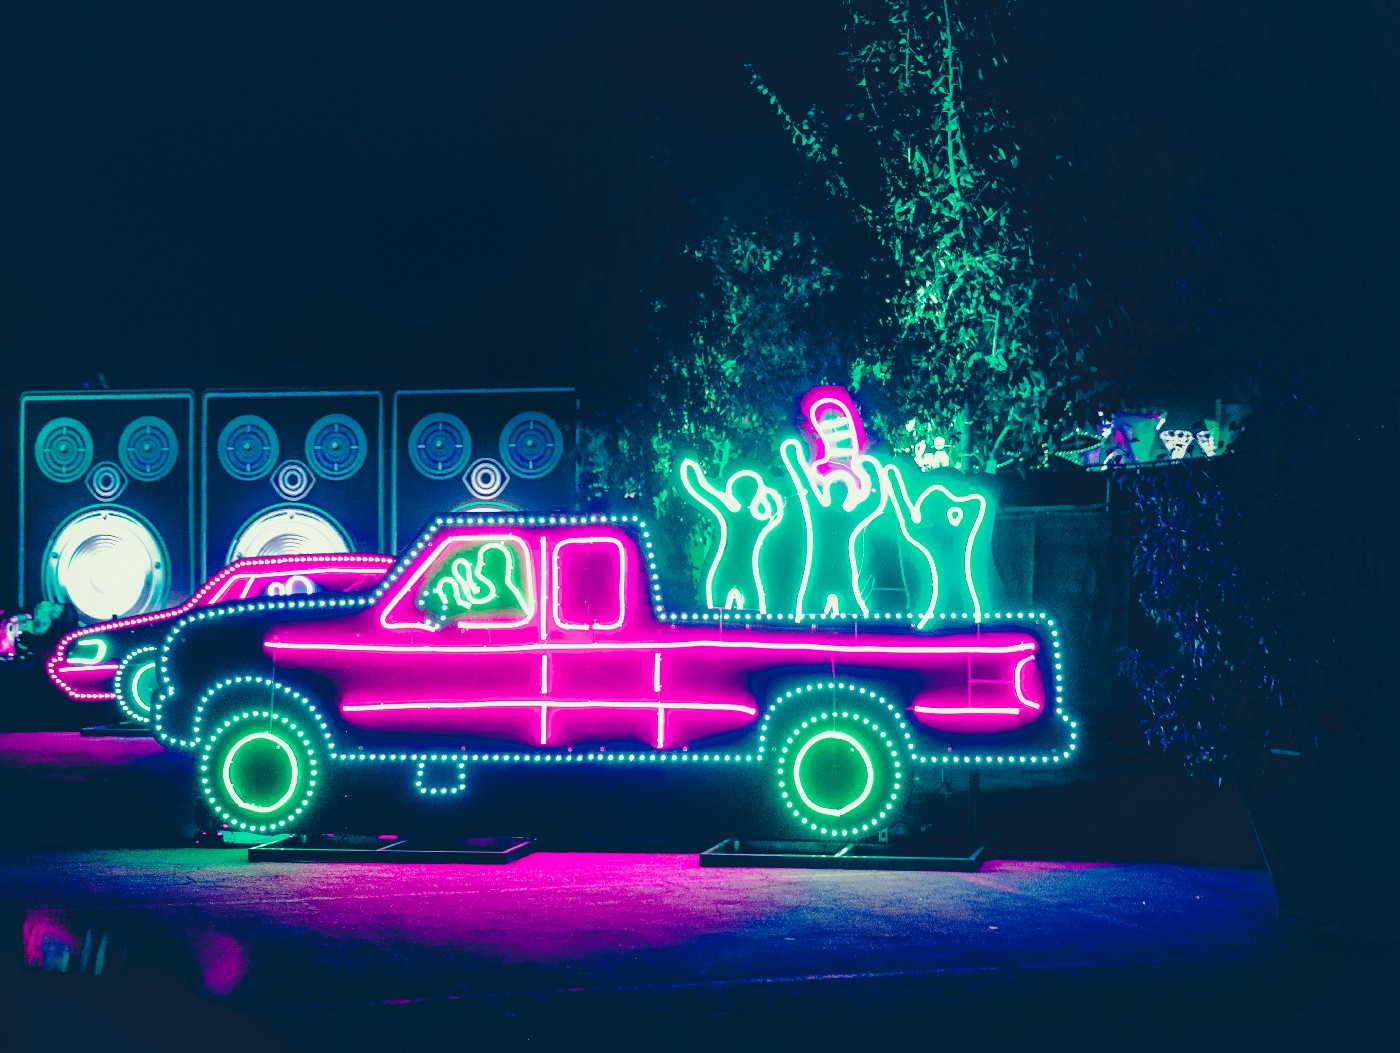 A neon sculpture in the form of a truck with people dancing in the back. Project Raven Novel by Jim Latham